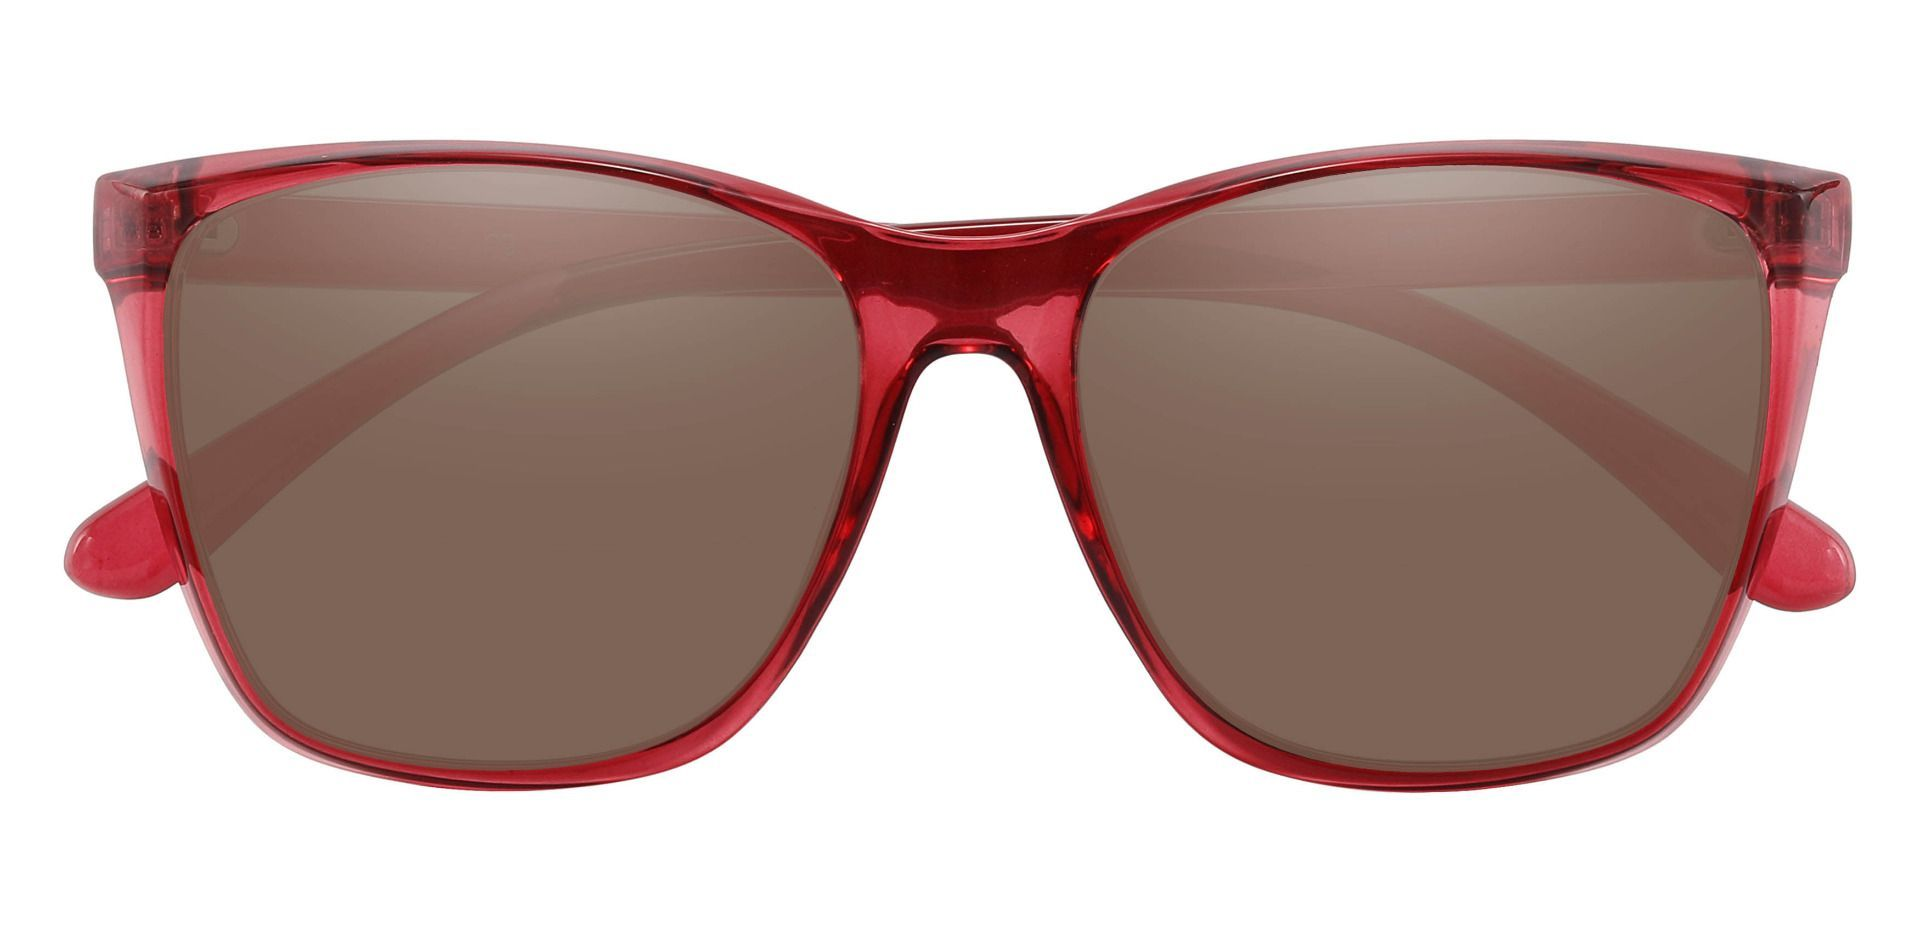 Taryn Square Prescription Sunglasses - Red Frame With Brown Lenses